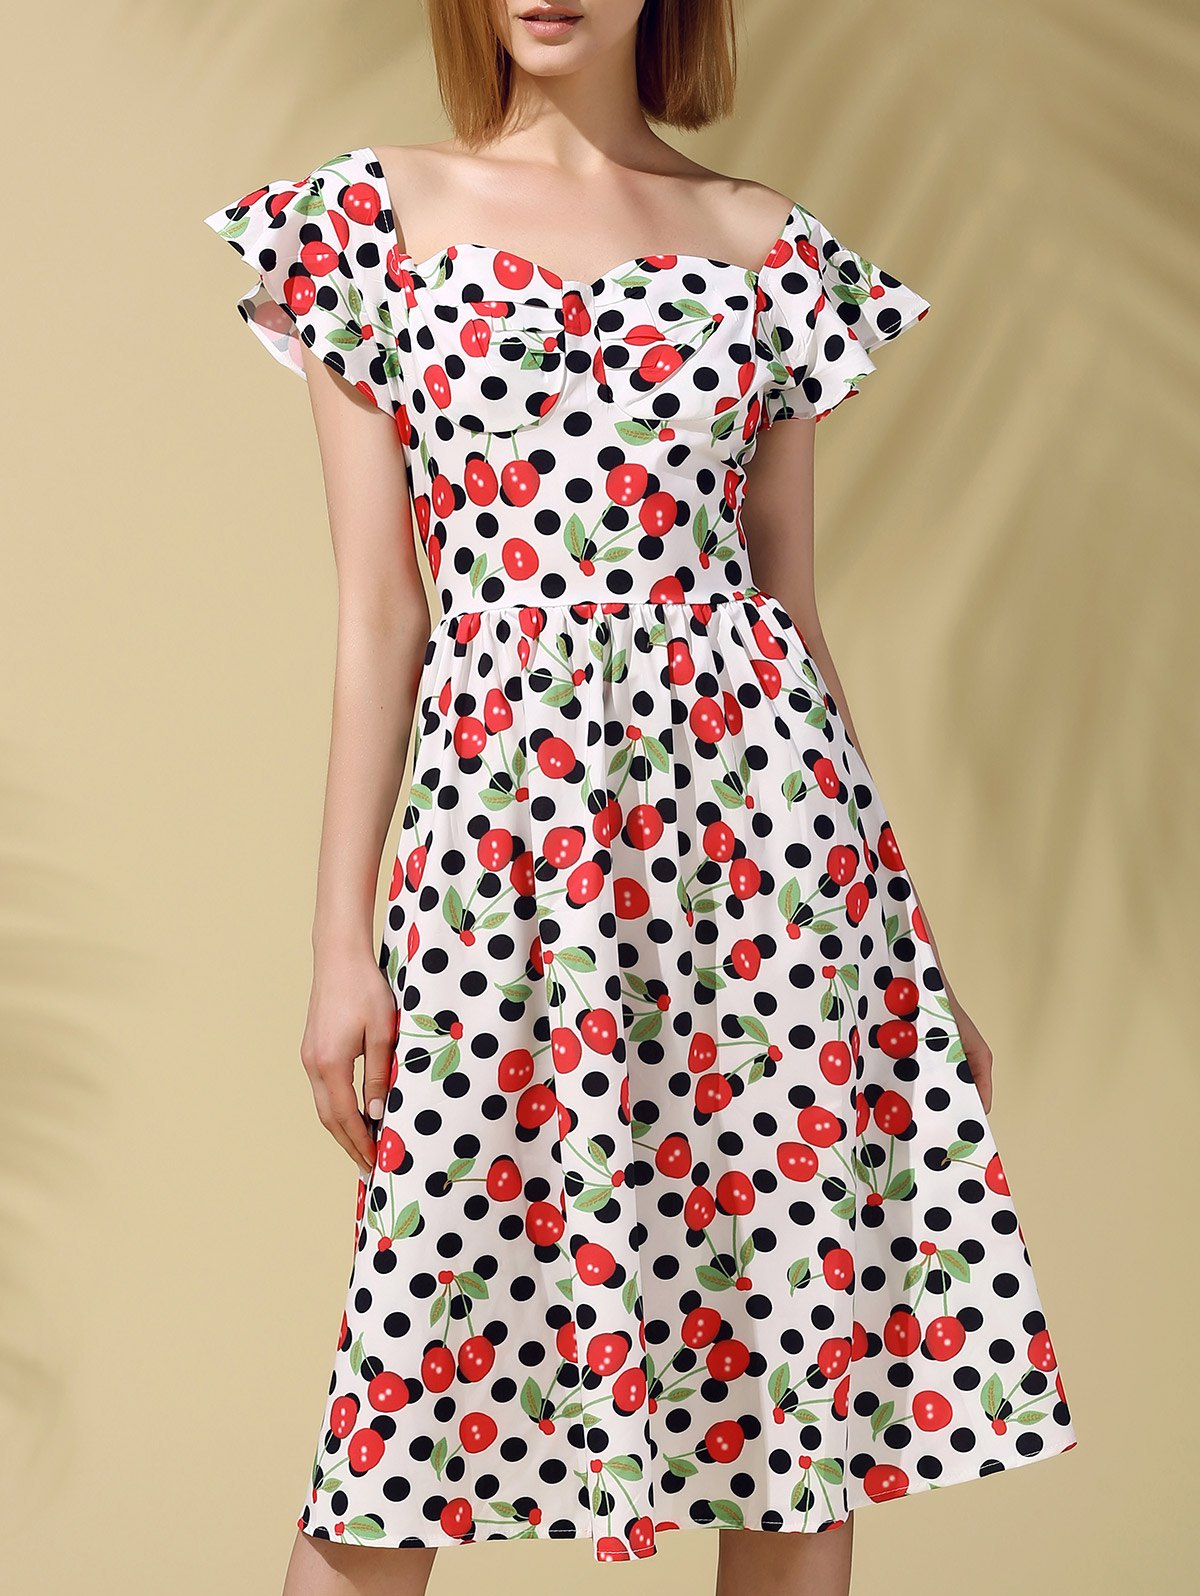 Retro Style Cherry Print Polka Dot Slimming Women's Dress - COLORMIX XS